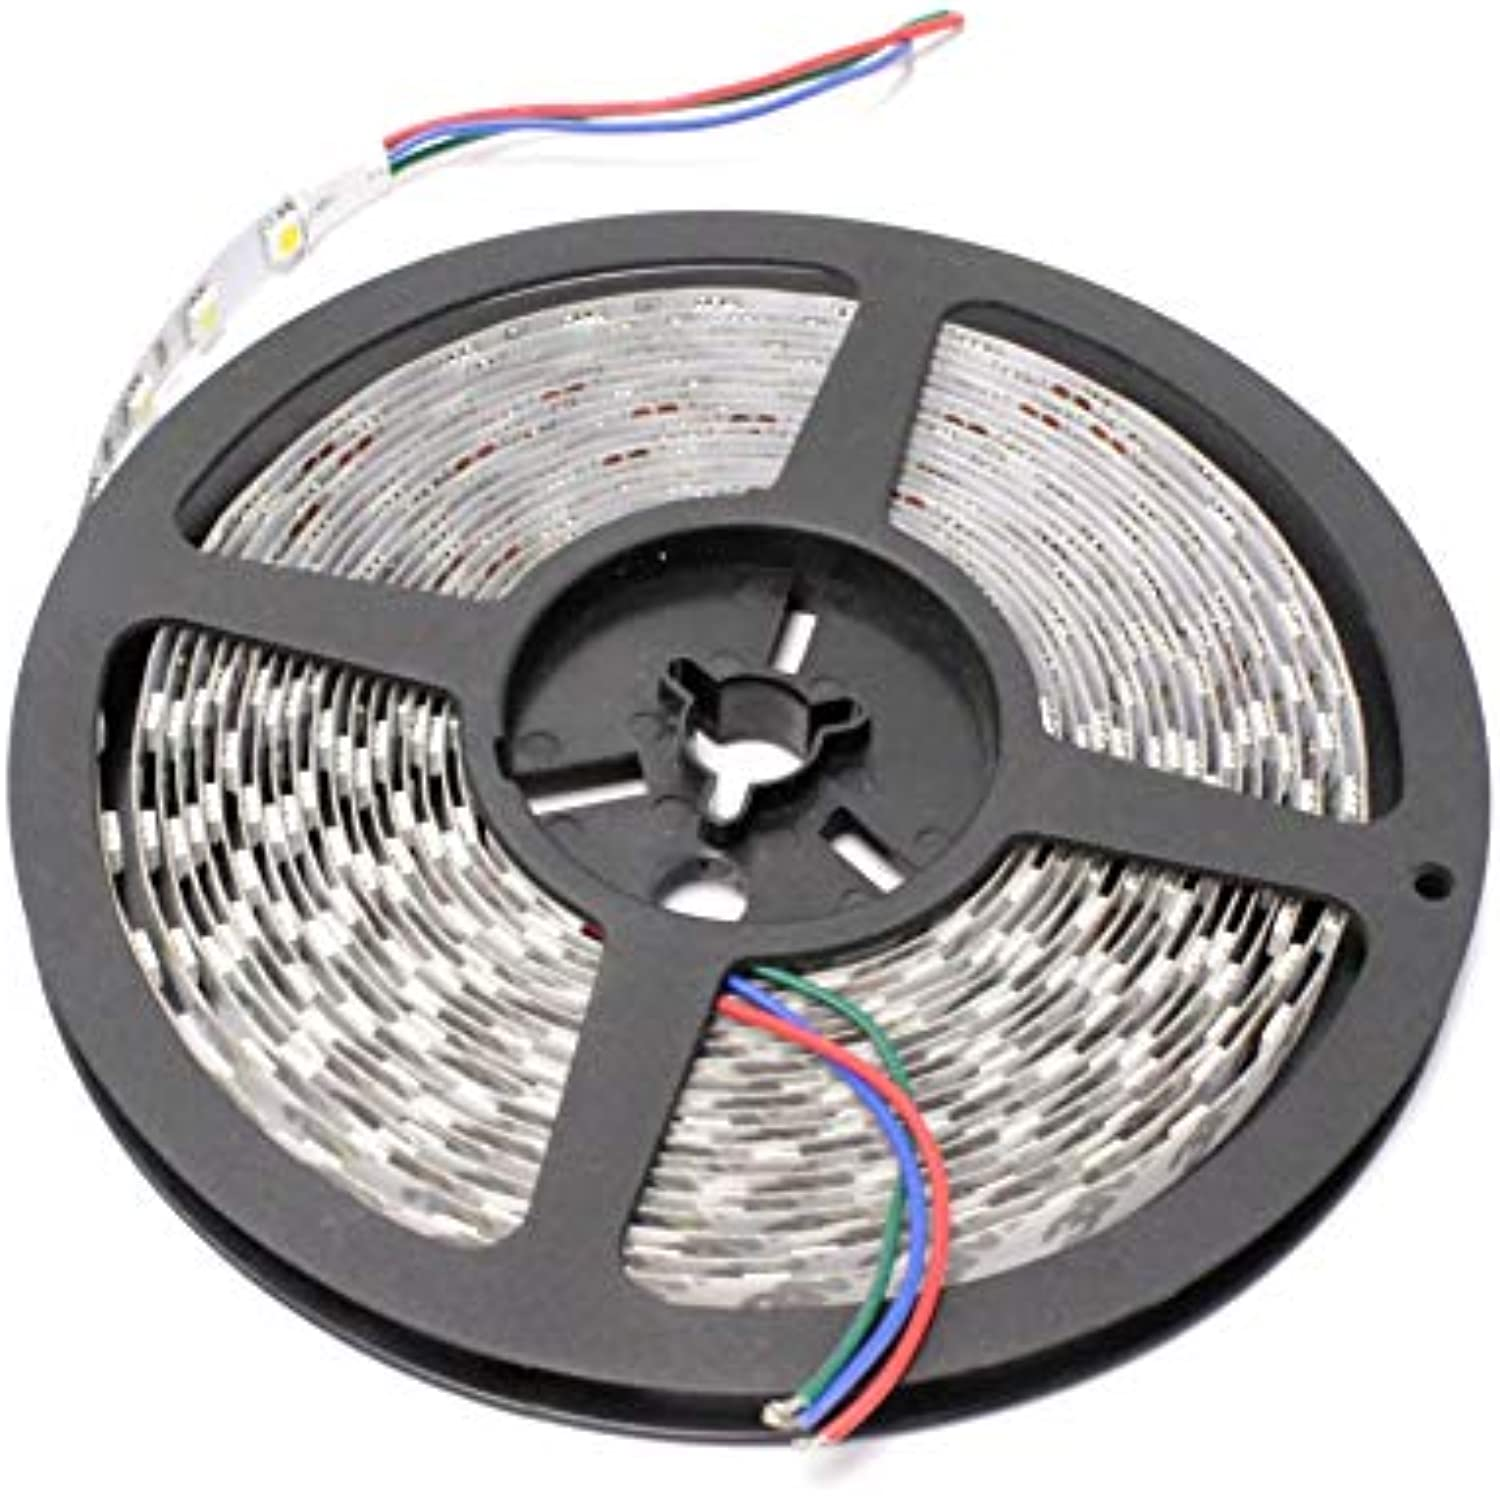 Cablematic Flexible LED-Streifen 13 lm LED 60 LED m 5m wei biFarbe